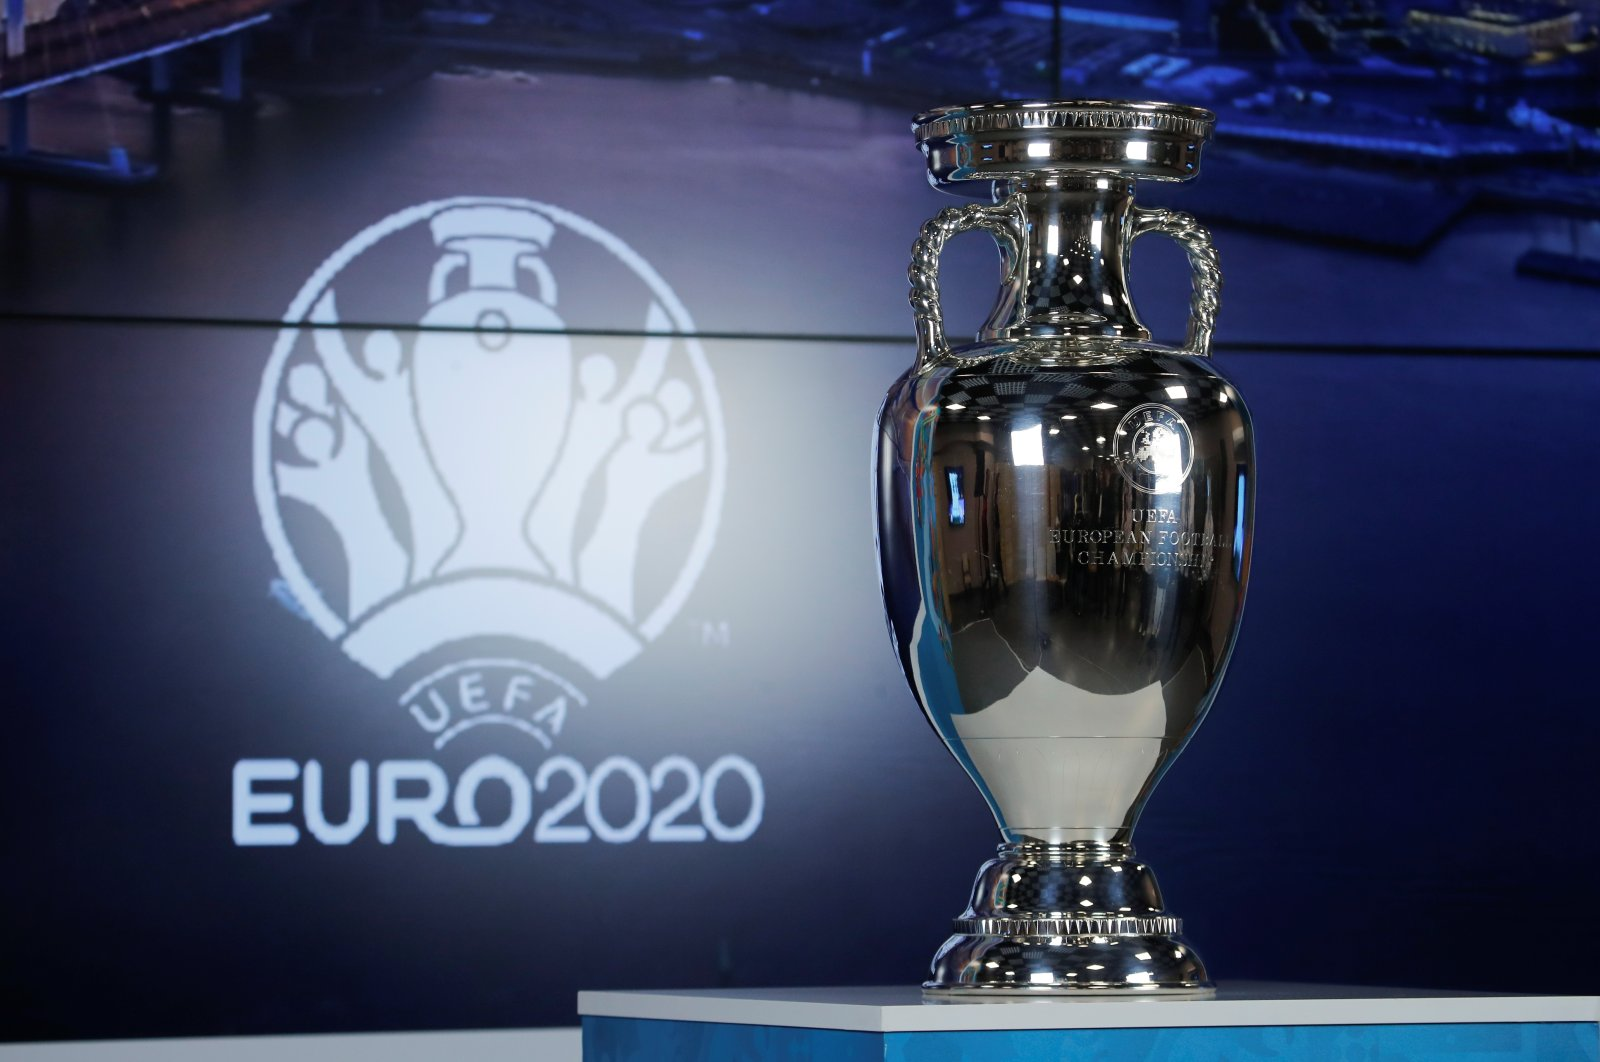 The UEFA Euro 2020 trophy is displayed marking 100 days before the start of the Euro 2020 tournament, St. Petersburg, Russia, March 3, 2021. (Reuters Photo)